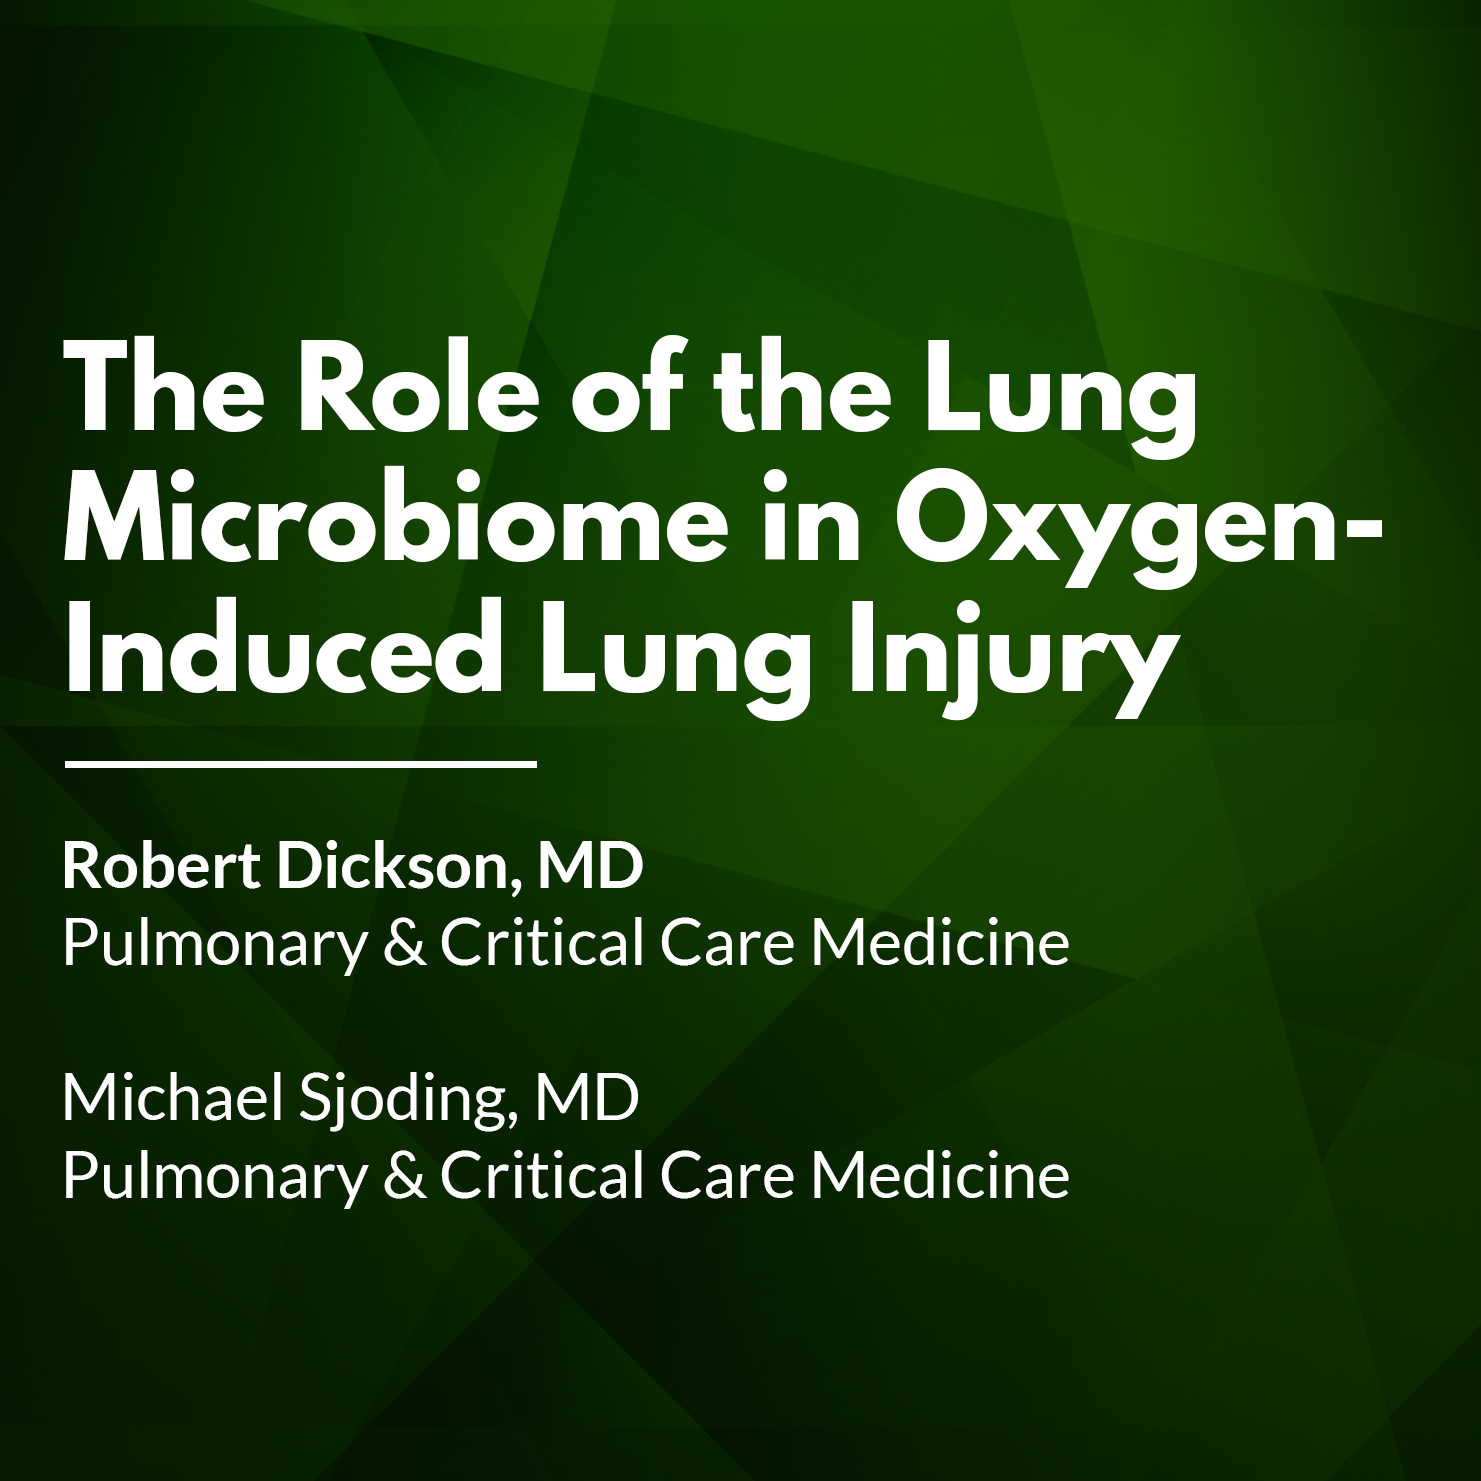 The Role of the Lung Microbiome in Oxygen-Induced Lung Injury Thumbnail.png